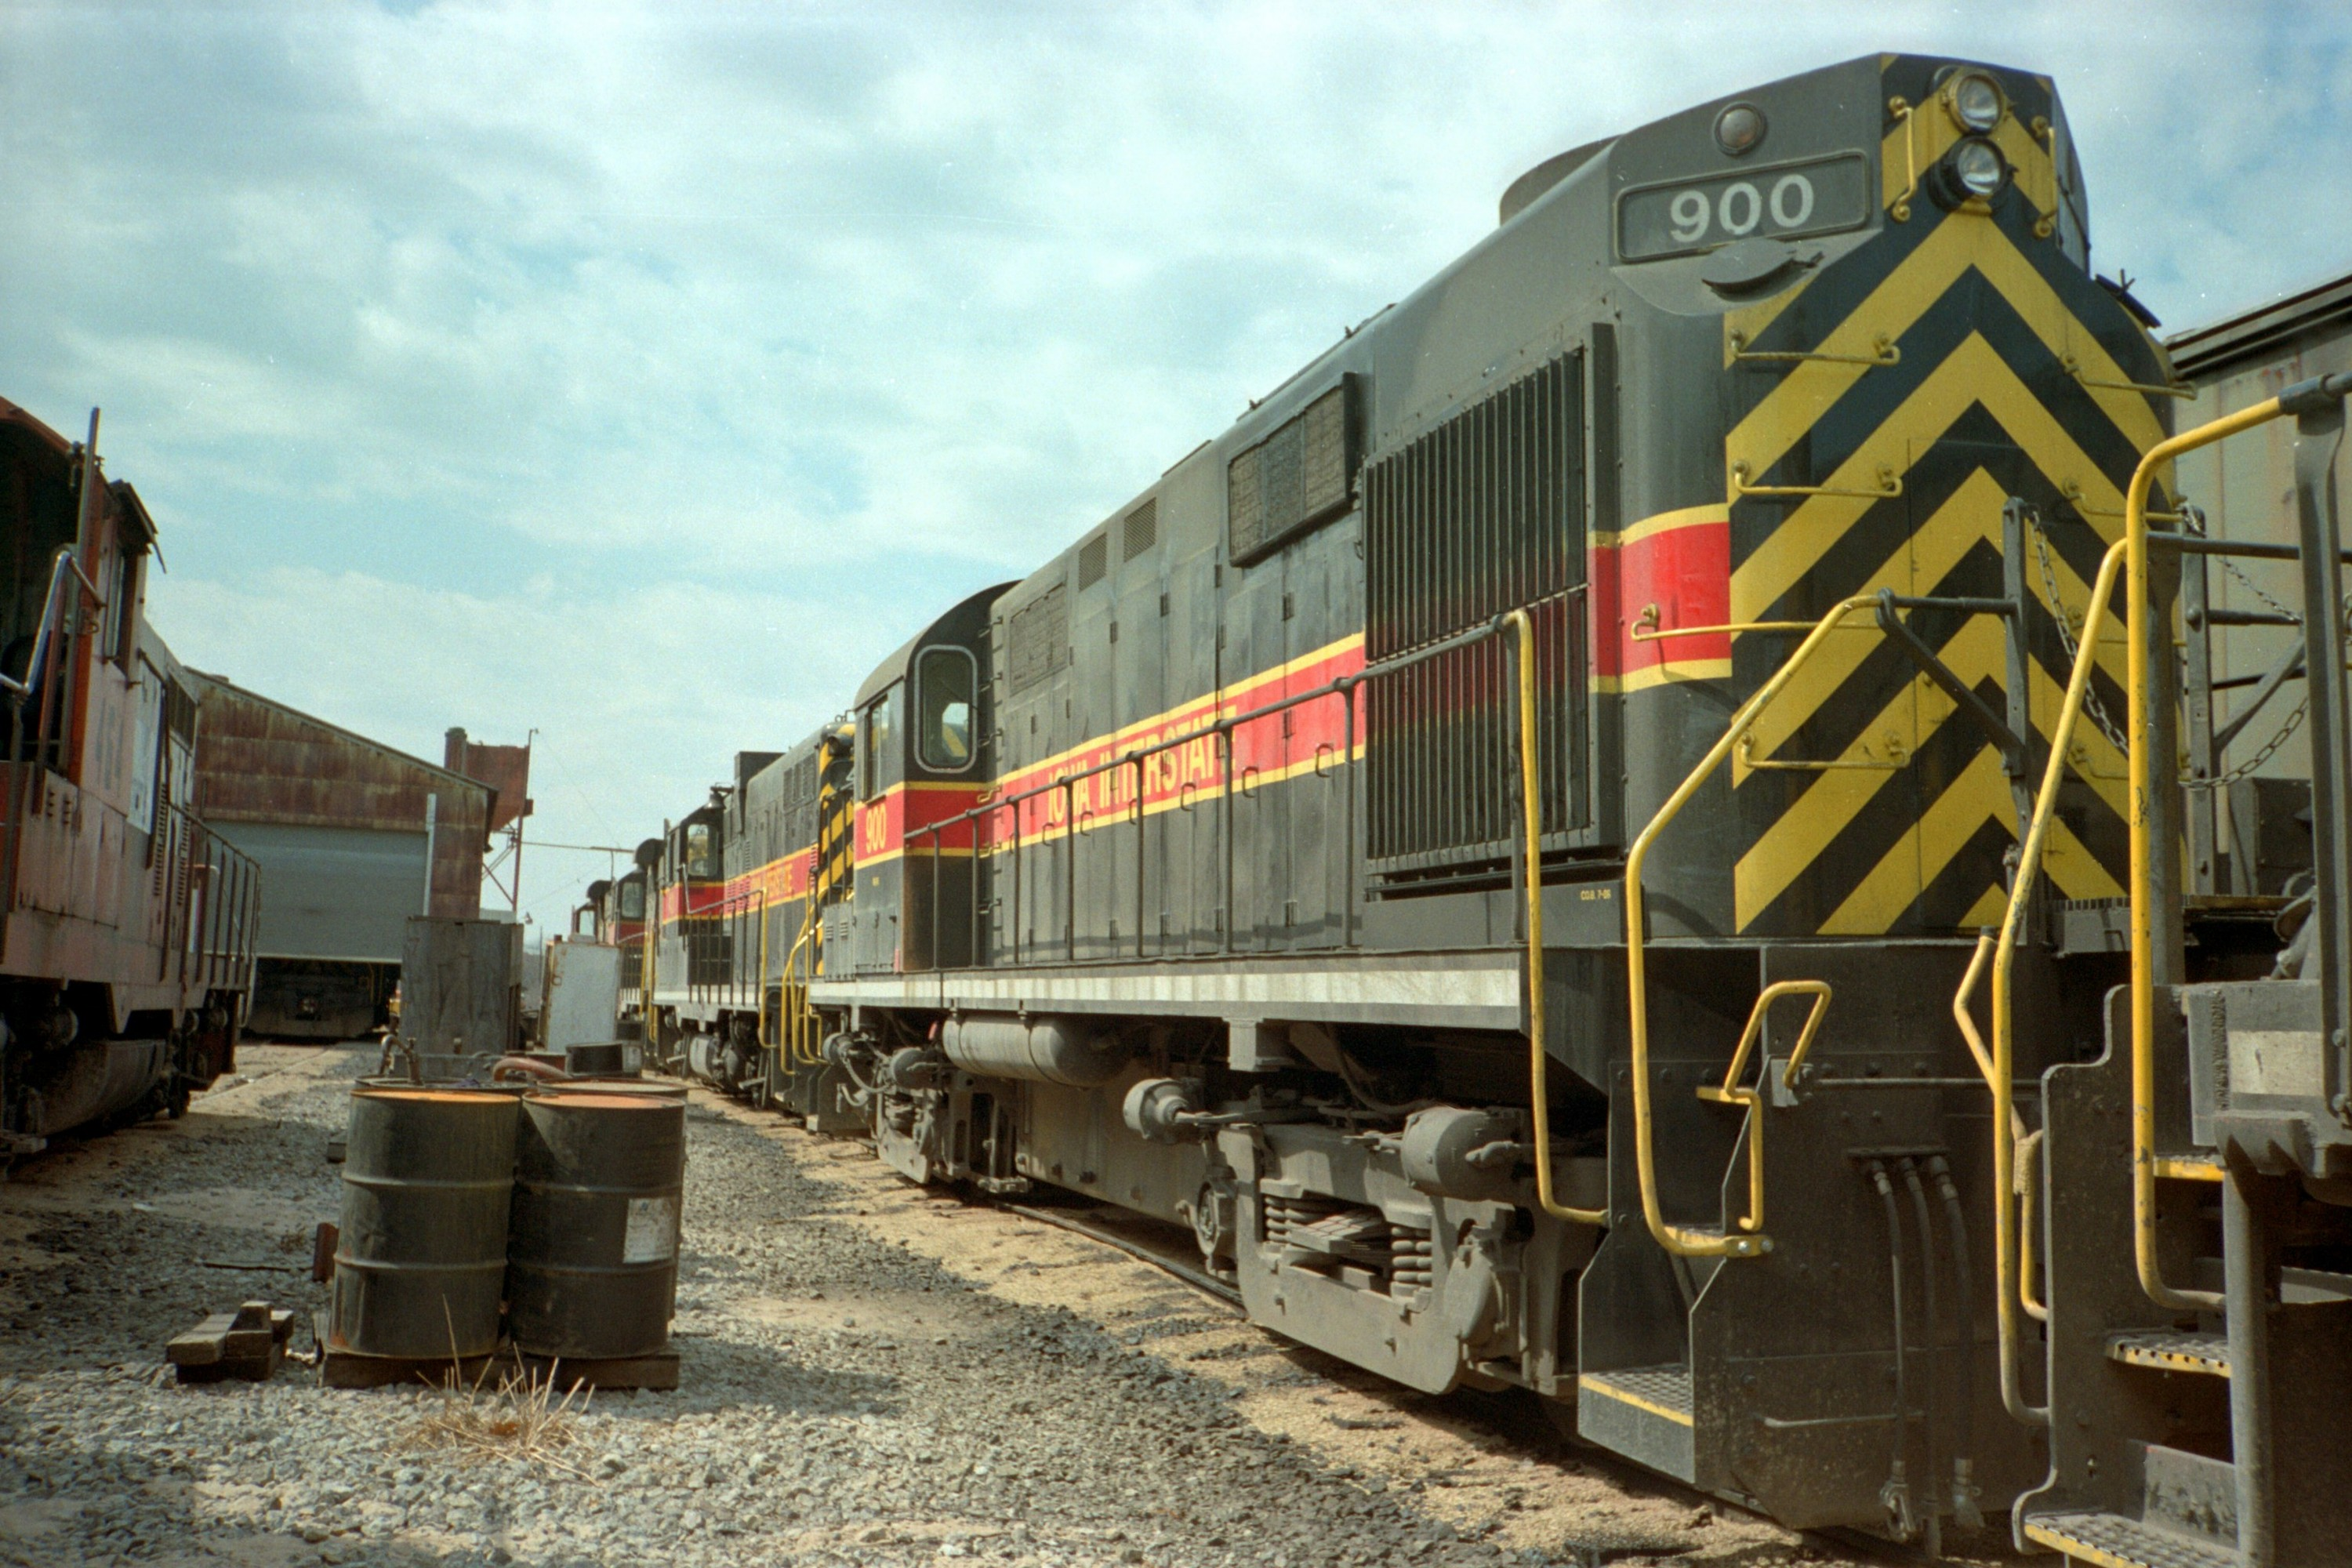 IAIS 900 at Iowa City, IA on 12-Dec-1990